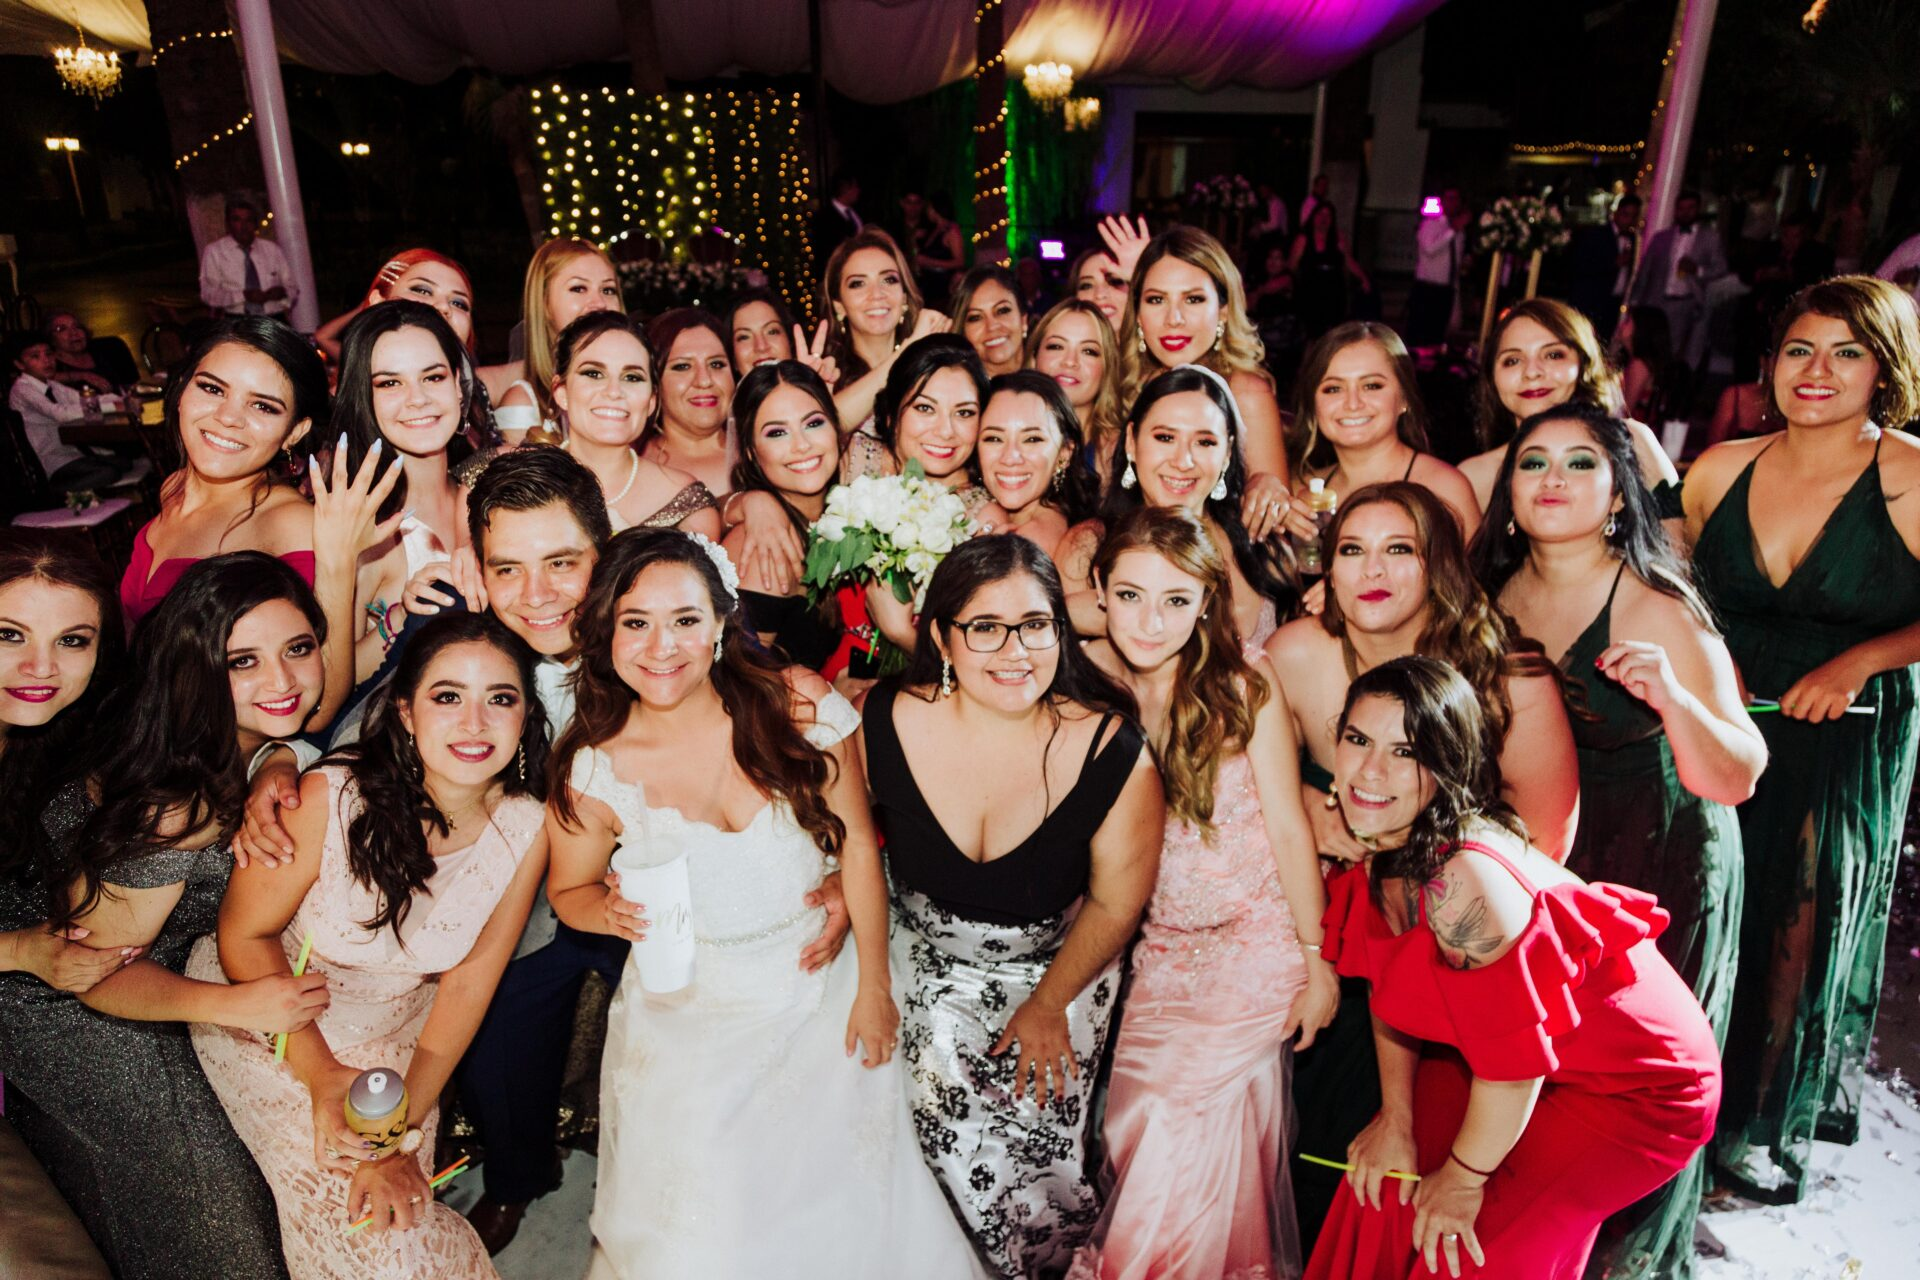 javier_noriega_fotografo_bodas_torreon_coahuila_zacatecas_wedding_photographer66a